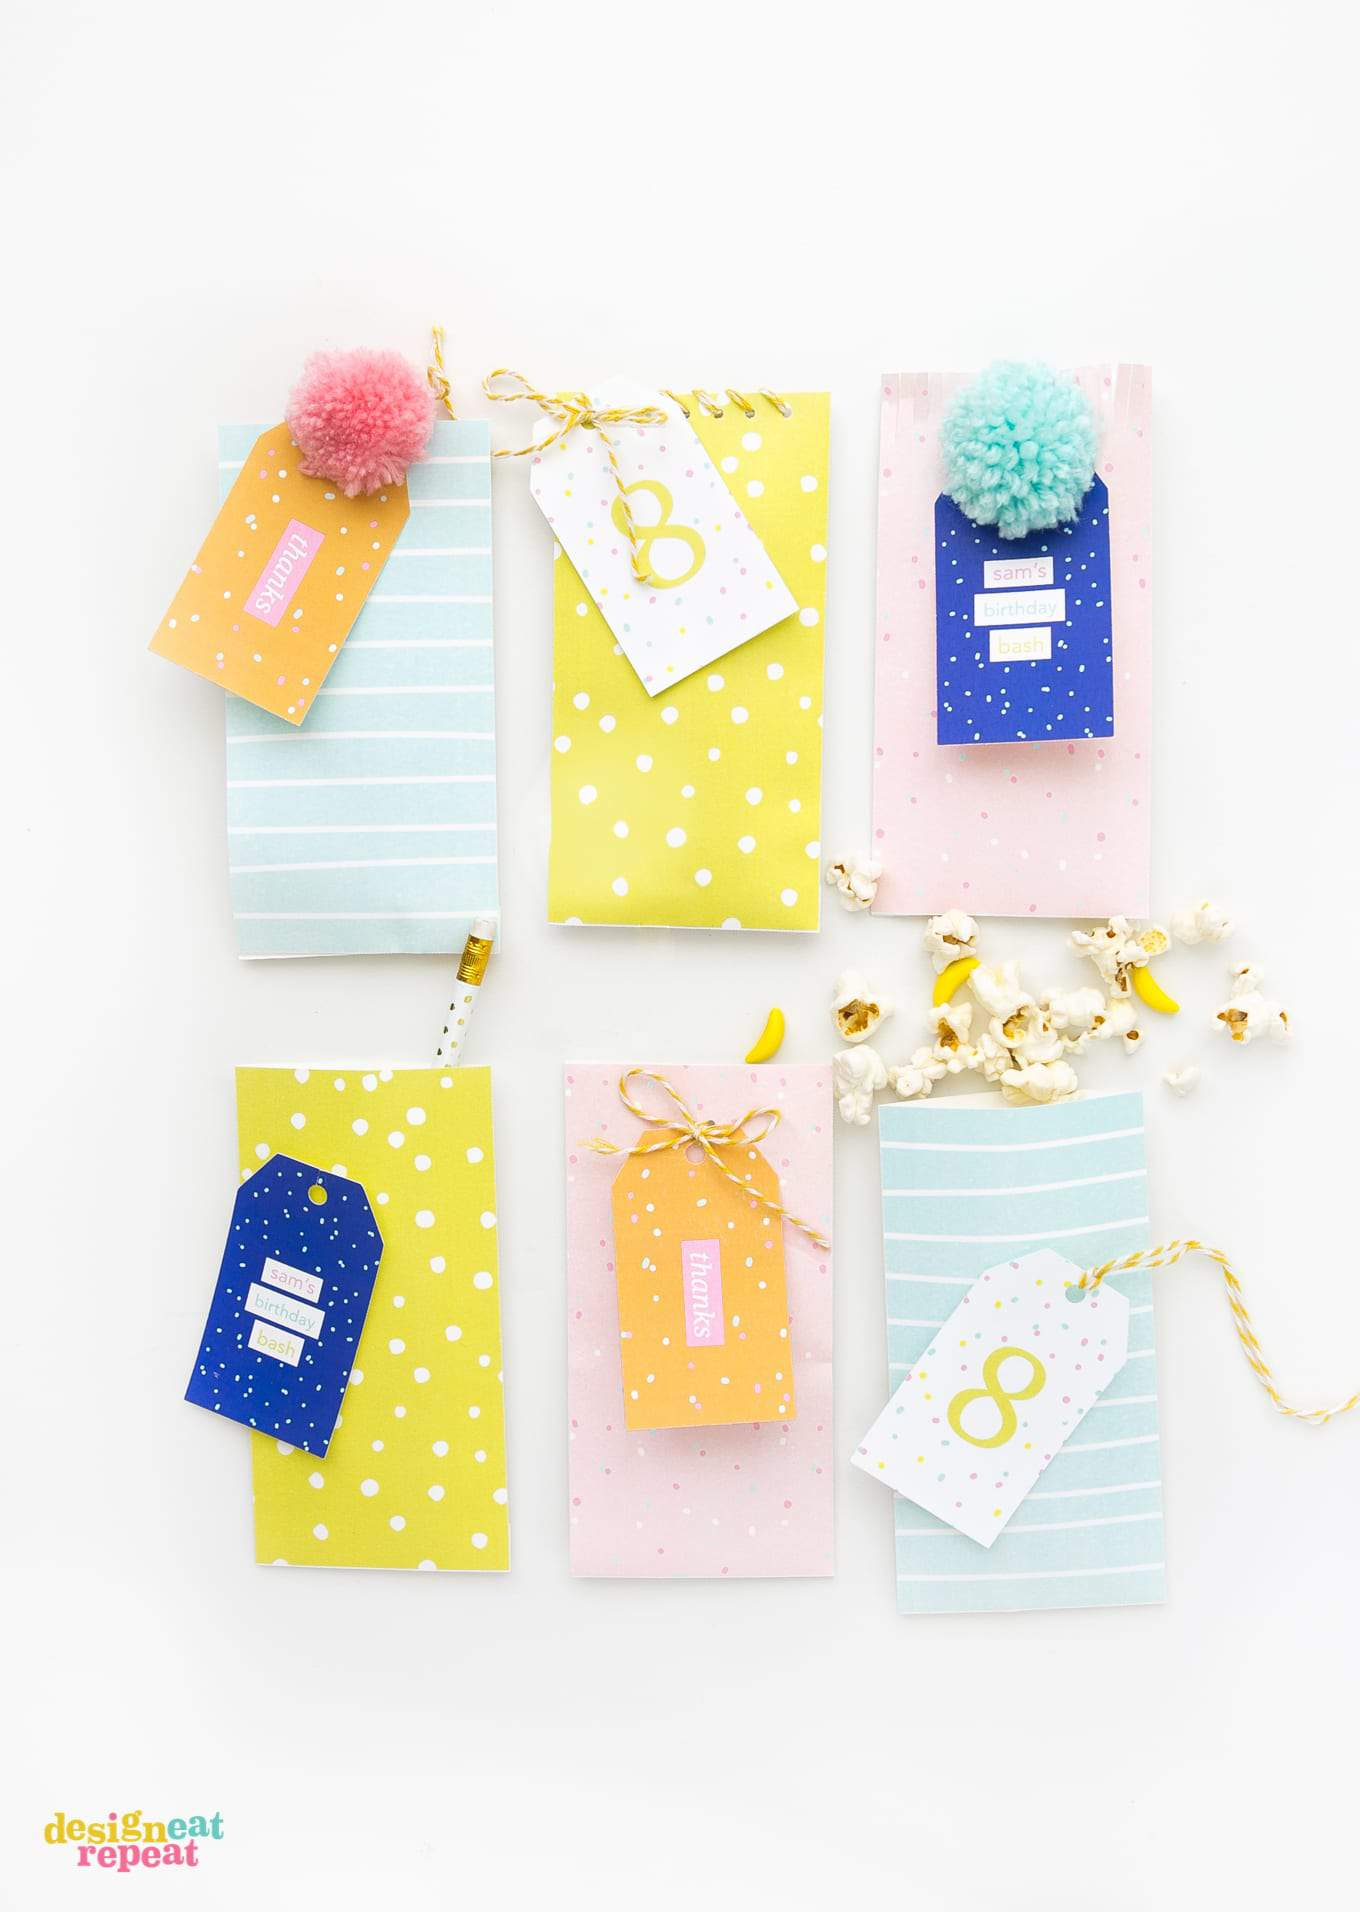 Download these fun & colorful printable birthday gift tags and attach them to treat bags for an easy party favor idea!